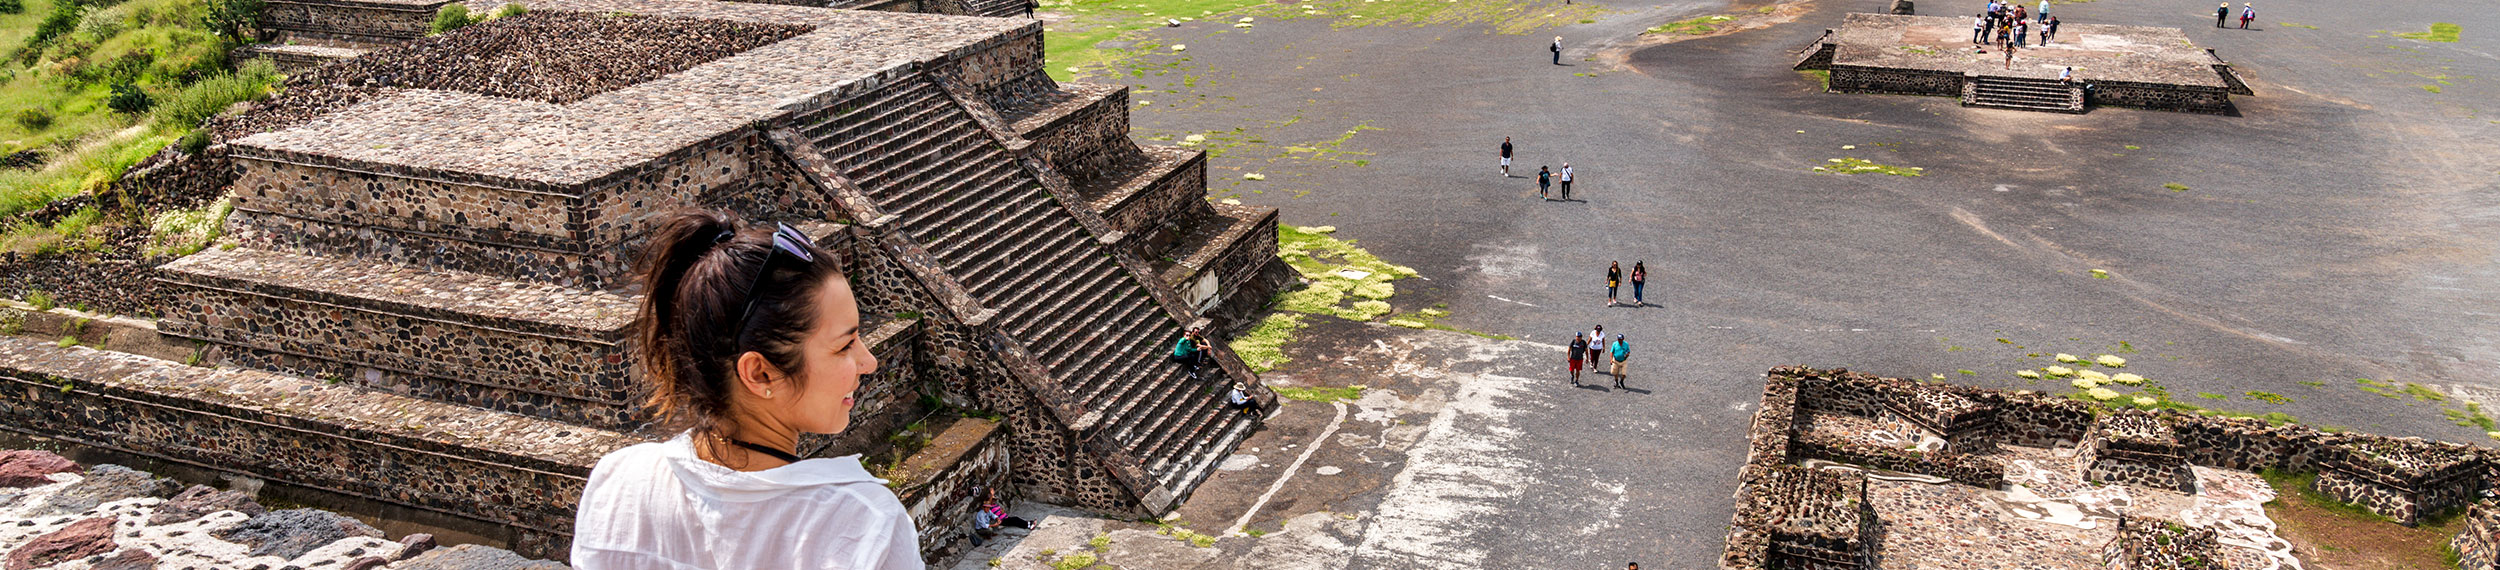 A young woman surveys the view around her from the top of one of the ancient Teotihuacan pyramids on a sunn day in Mexico City, Mexico.